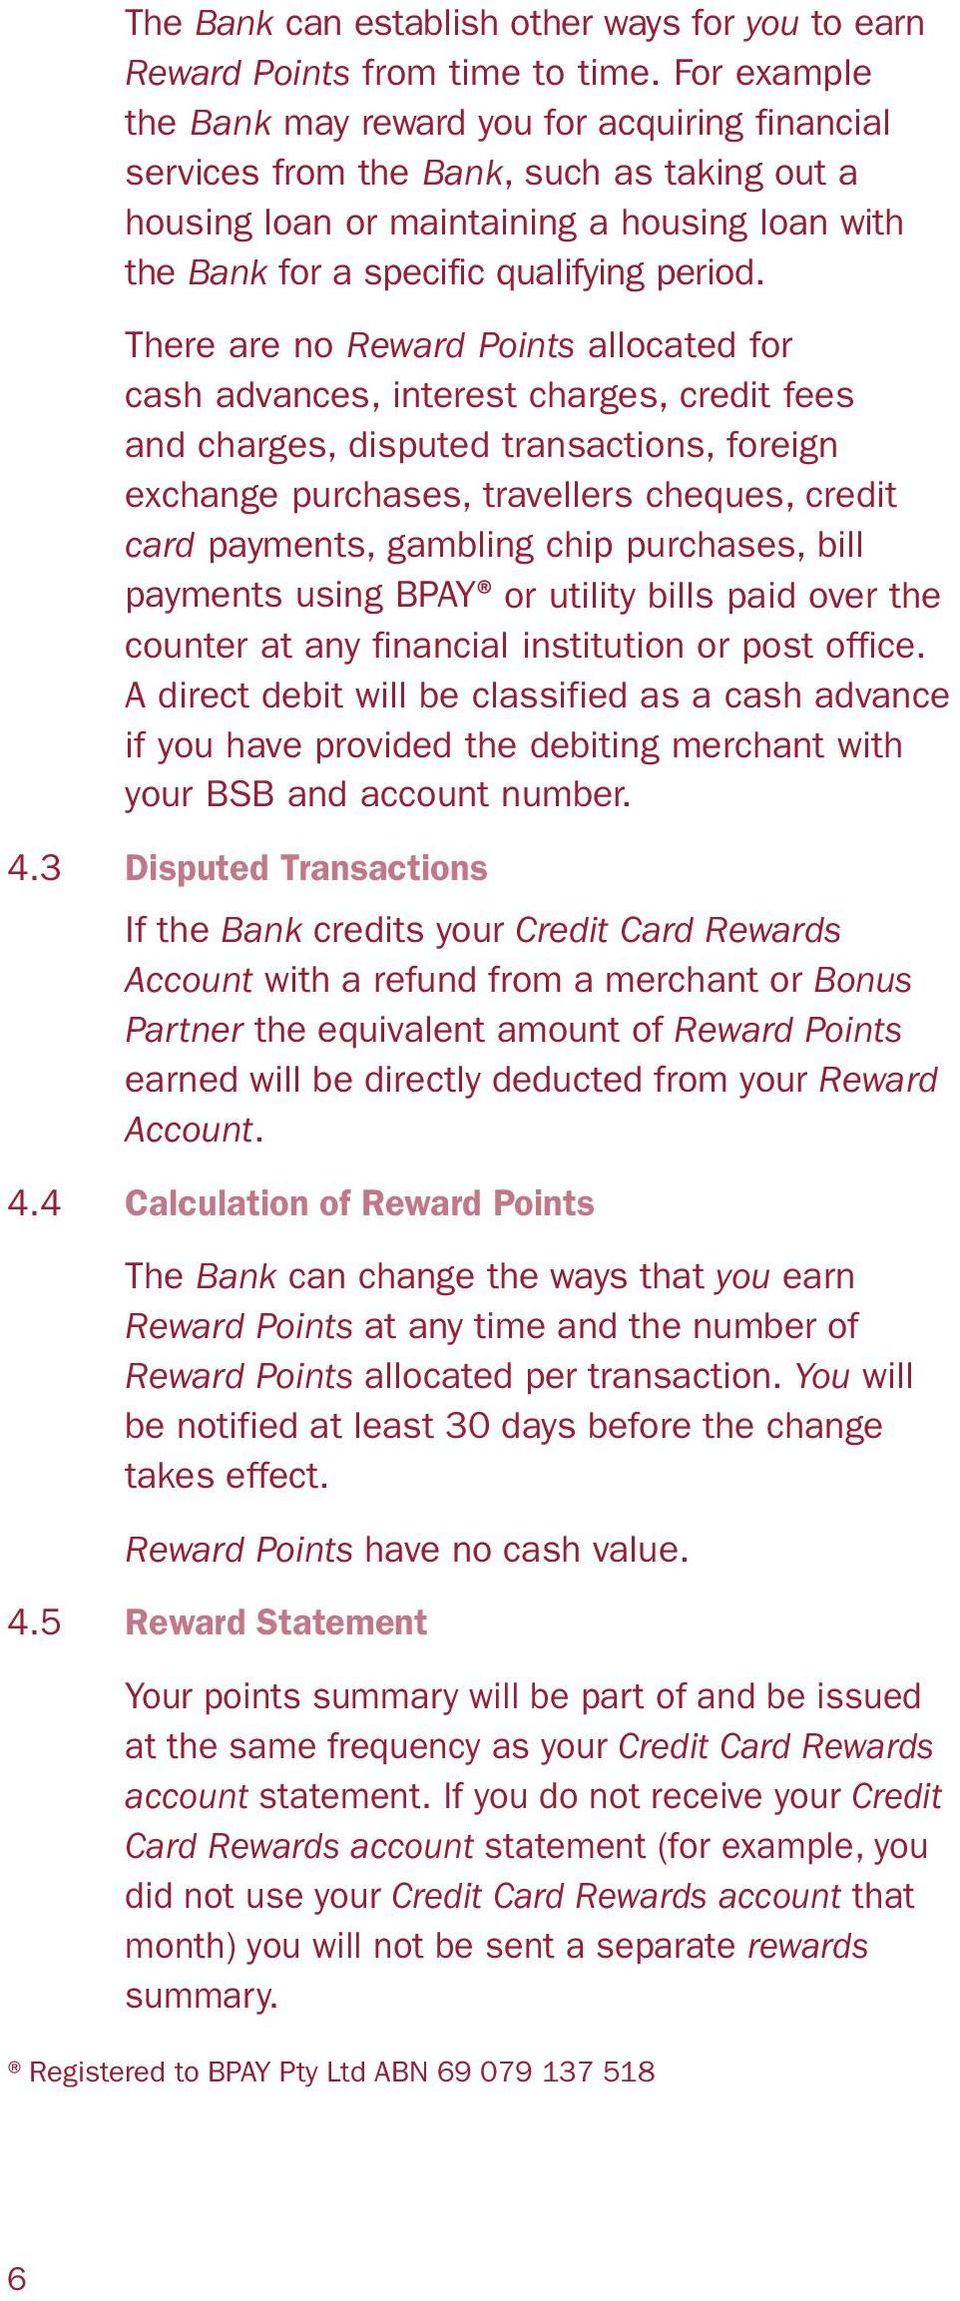 There are no Reward Points allocated for cash advances, interest charges, credit fees and charges, disputed transactions, foreign exchange purchases, travellers cheques, credit card payments,